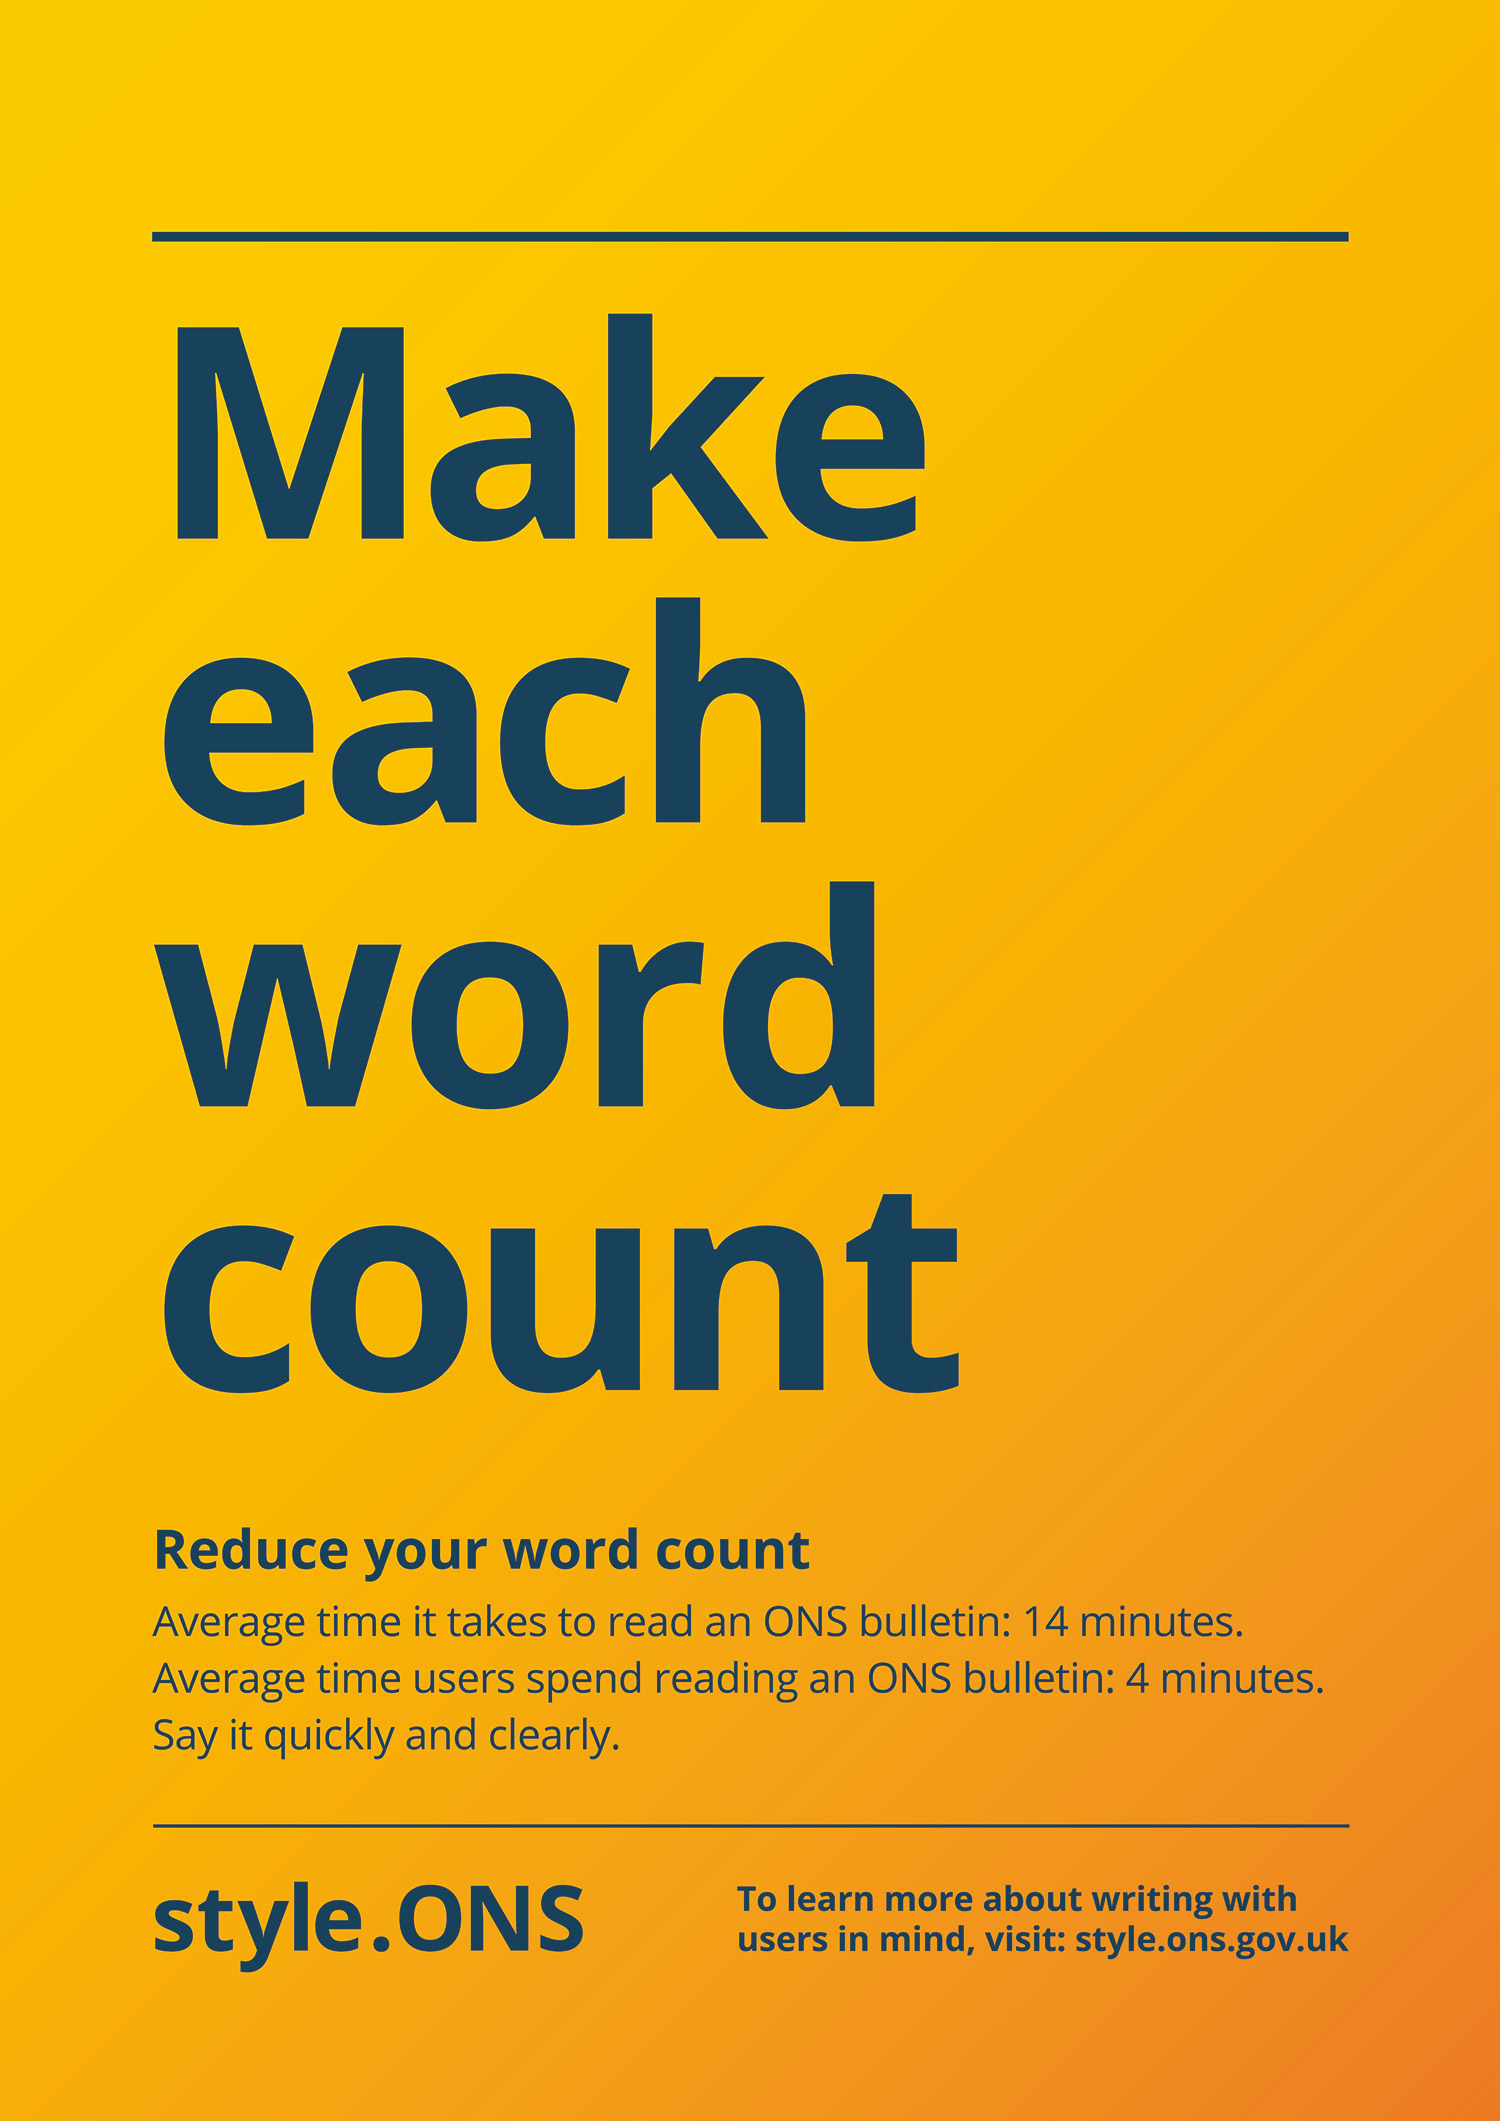 Make each word count Style.ONS campaign poster focusing on reducing your word count.